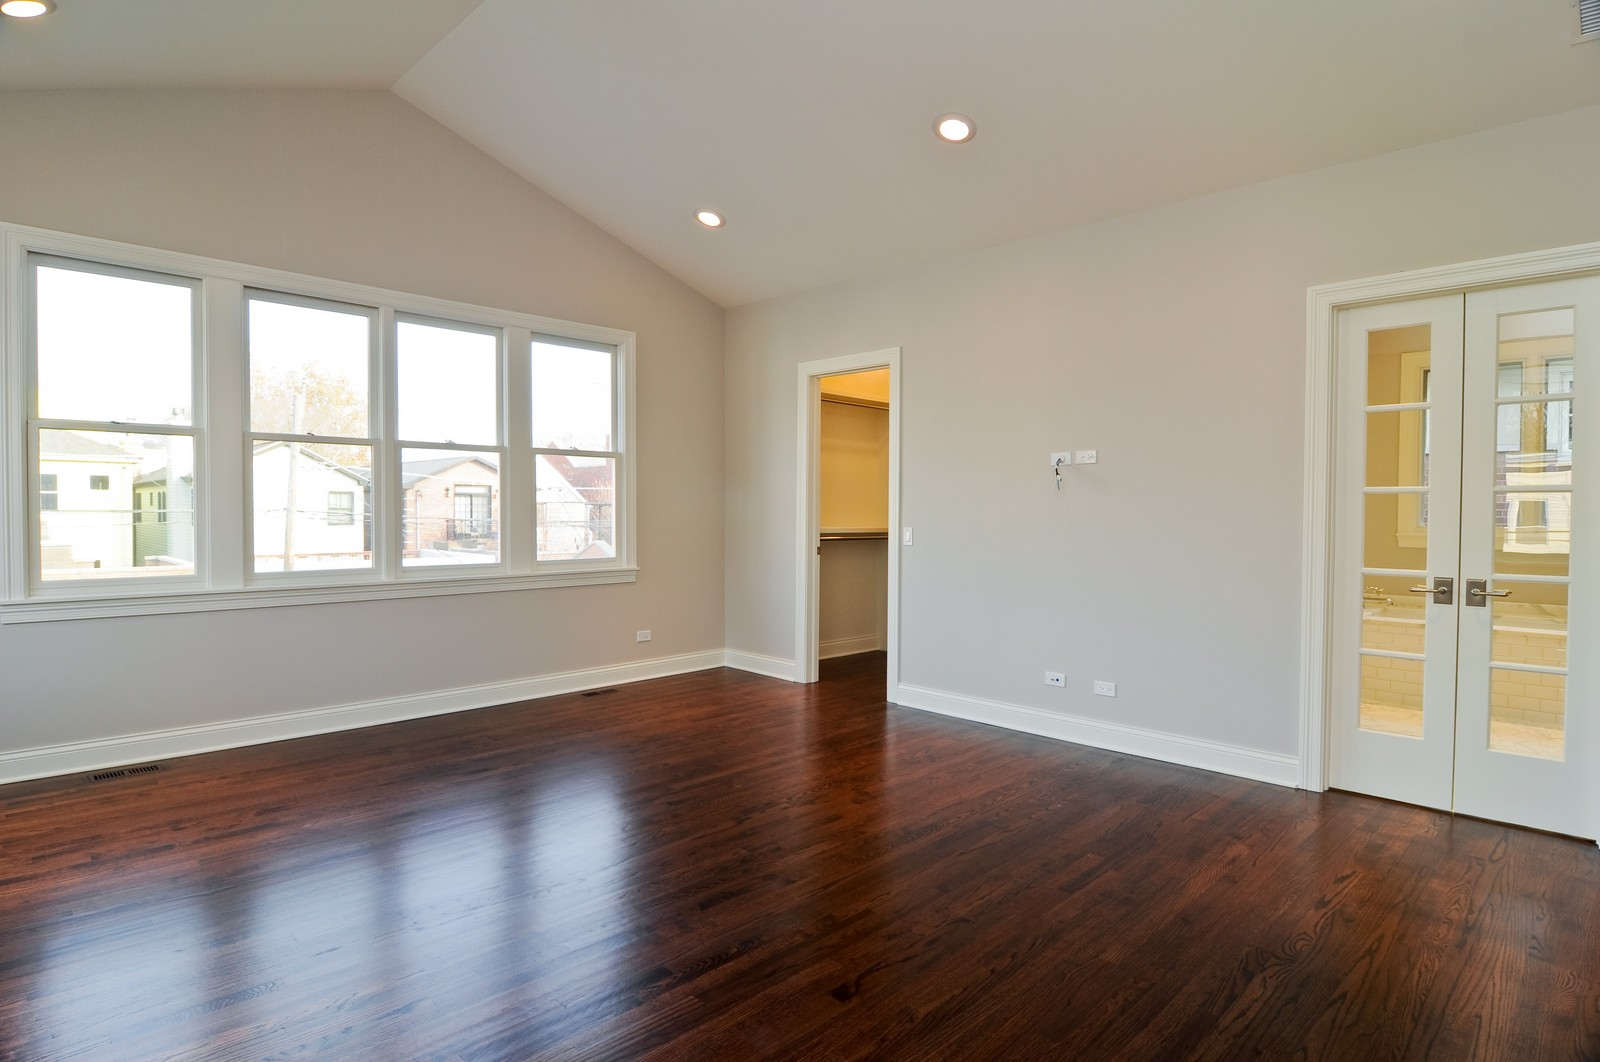 Real Estate Photography - 3845 N Paulina St, Chicago, IL, 60613 - Master Bedroom